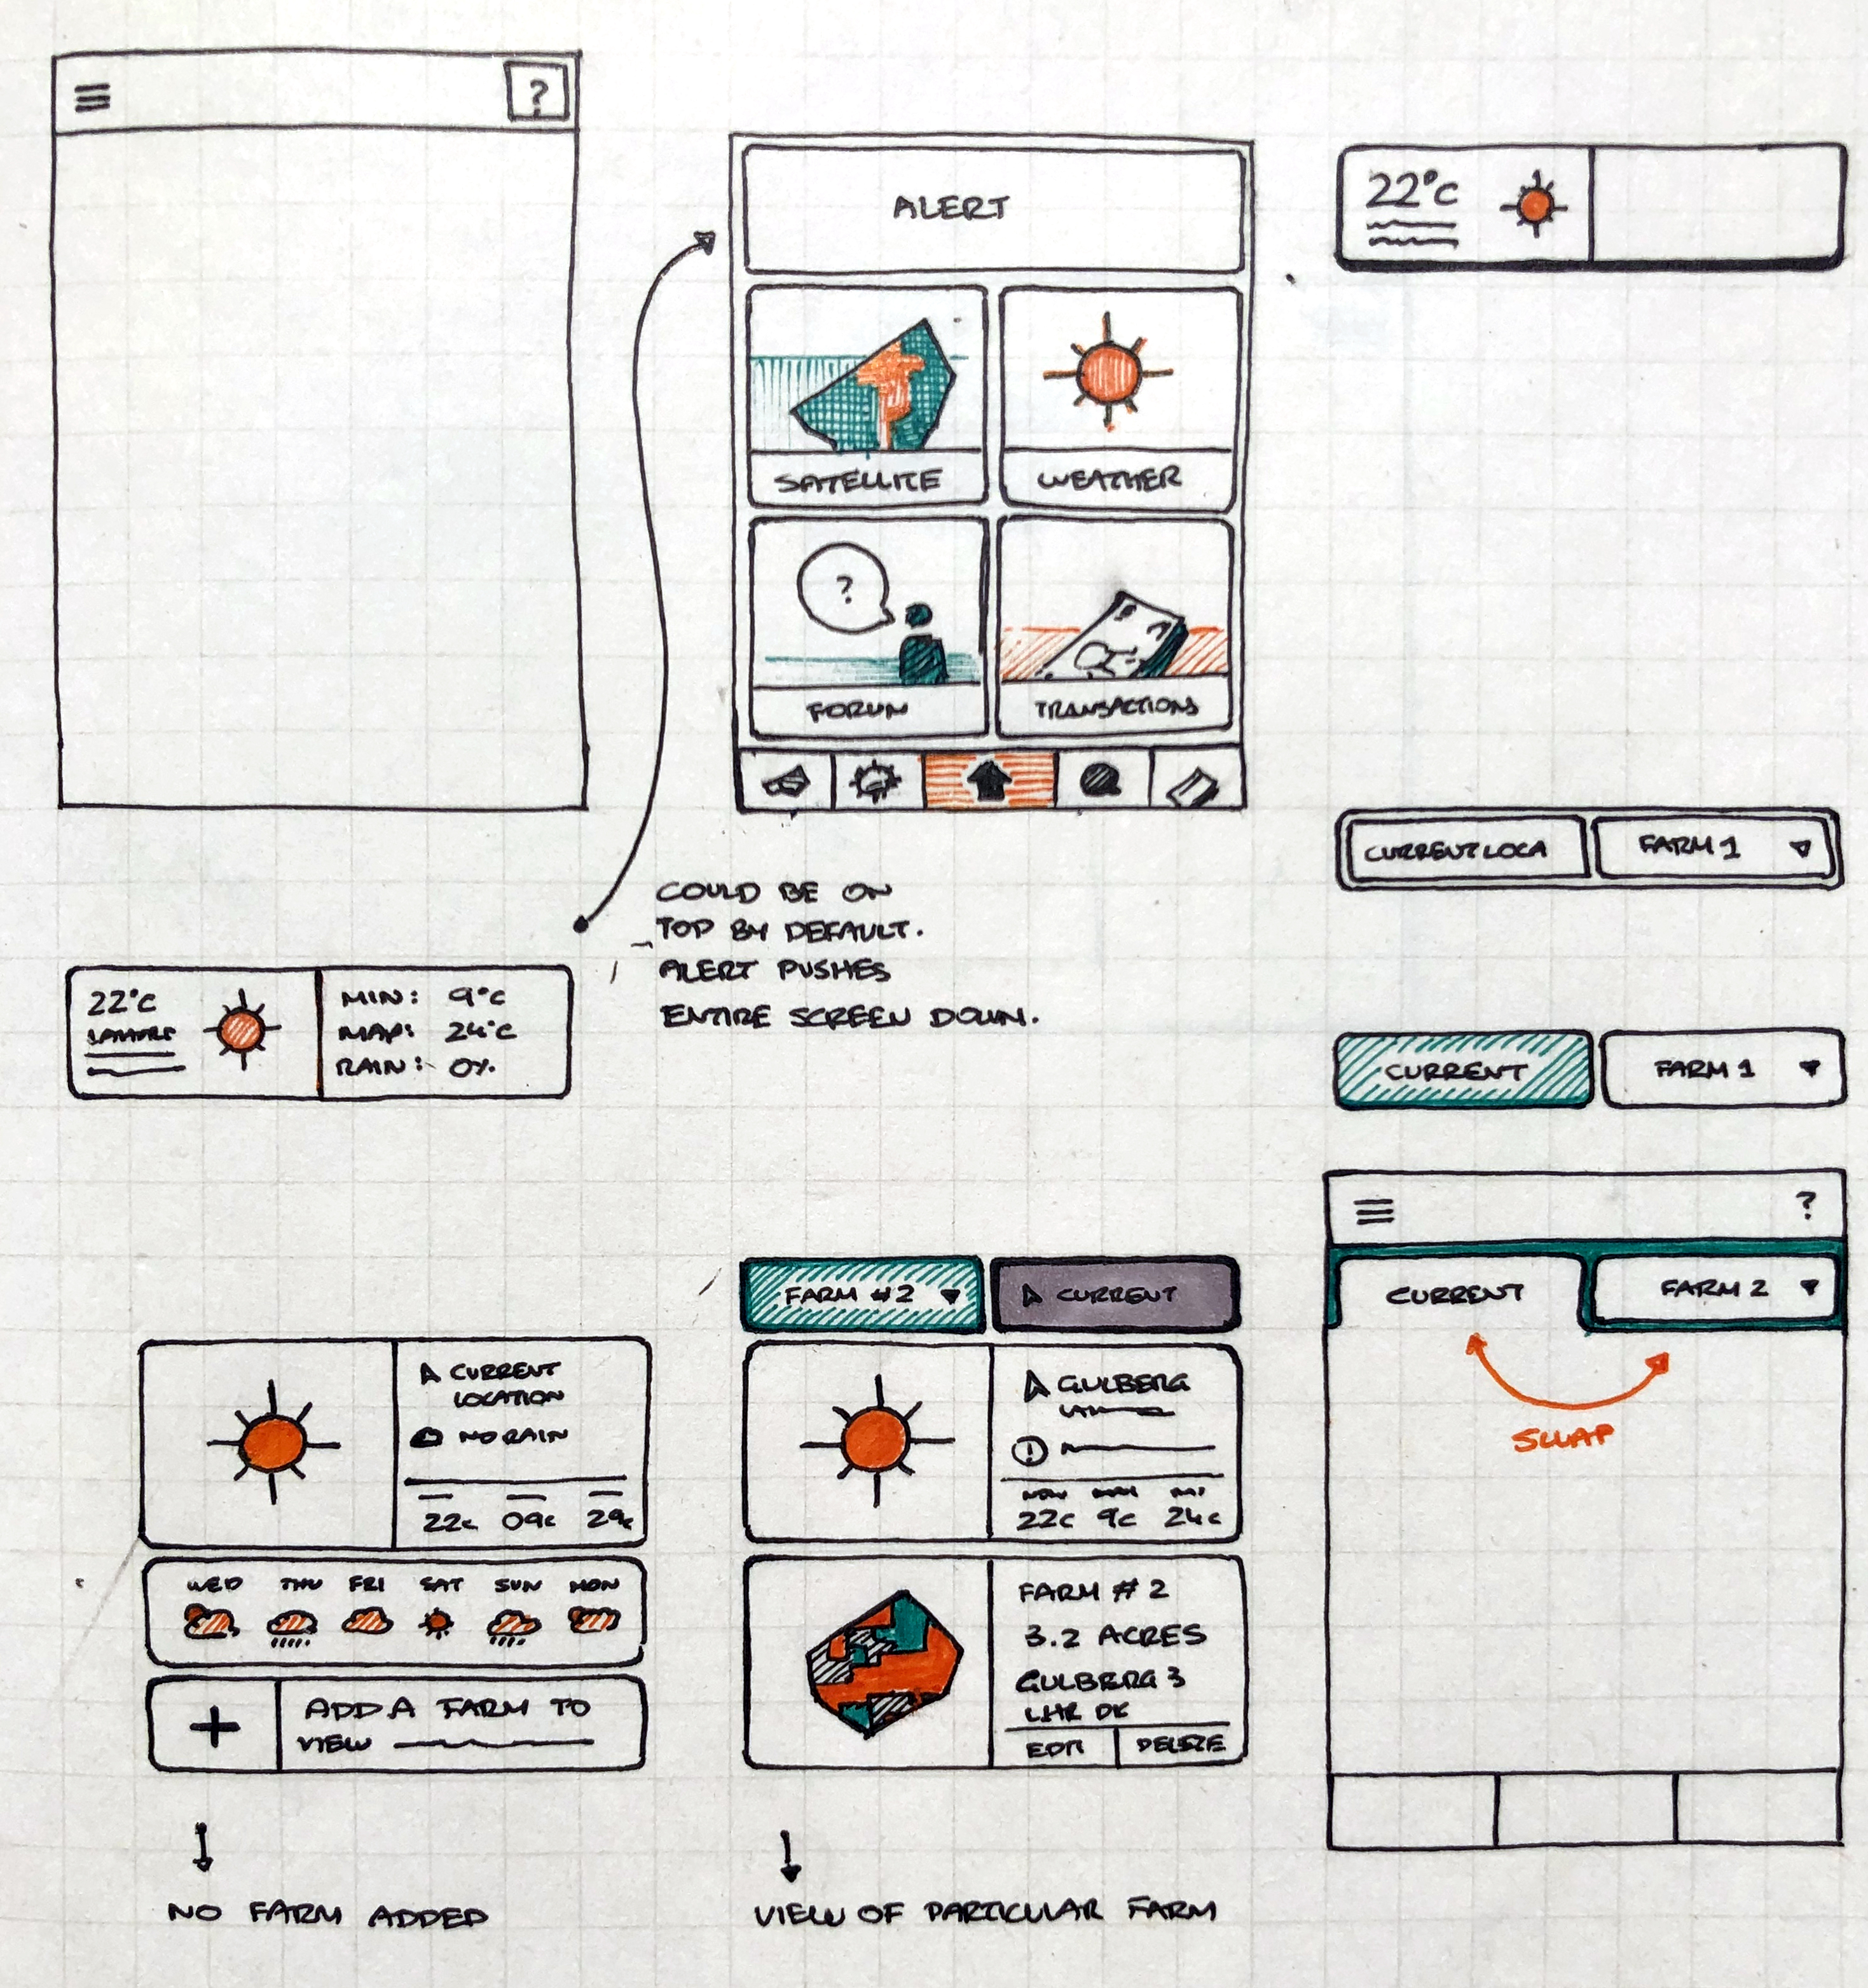 A lot of the initial redesign happened in the shape of quick sketches and use flow diagrams on paper